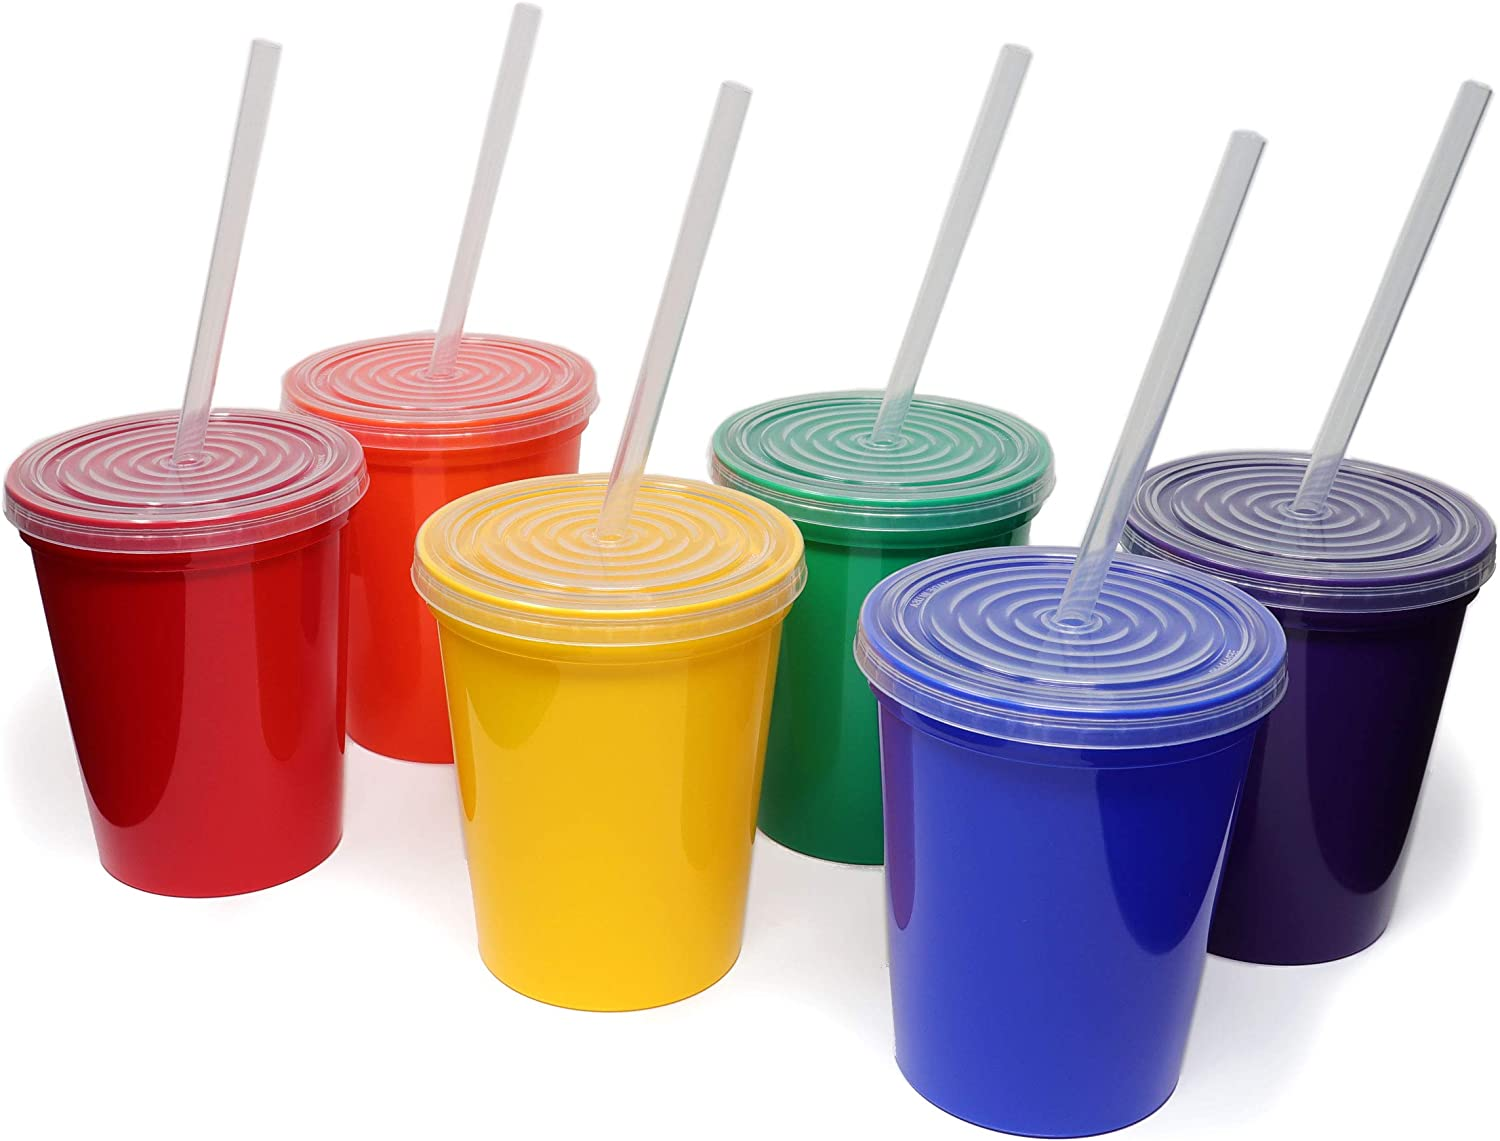 Rolling Sands 16oz Reusable Plastic Stadium Rainbow Cups with Lids, 6 Pack, USA Made; Plastic Tumblers and Lids, Includes 6 Reusable Straws; Top Shelf Dishwasher